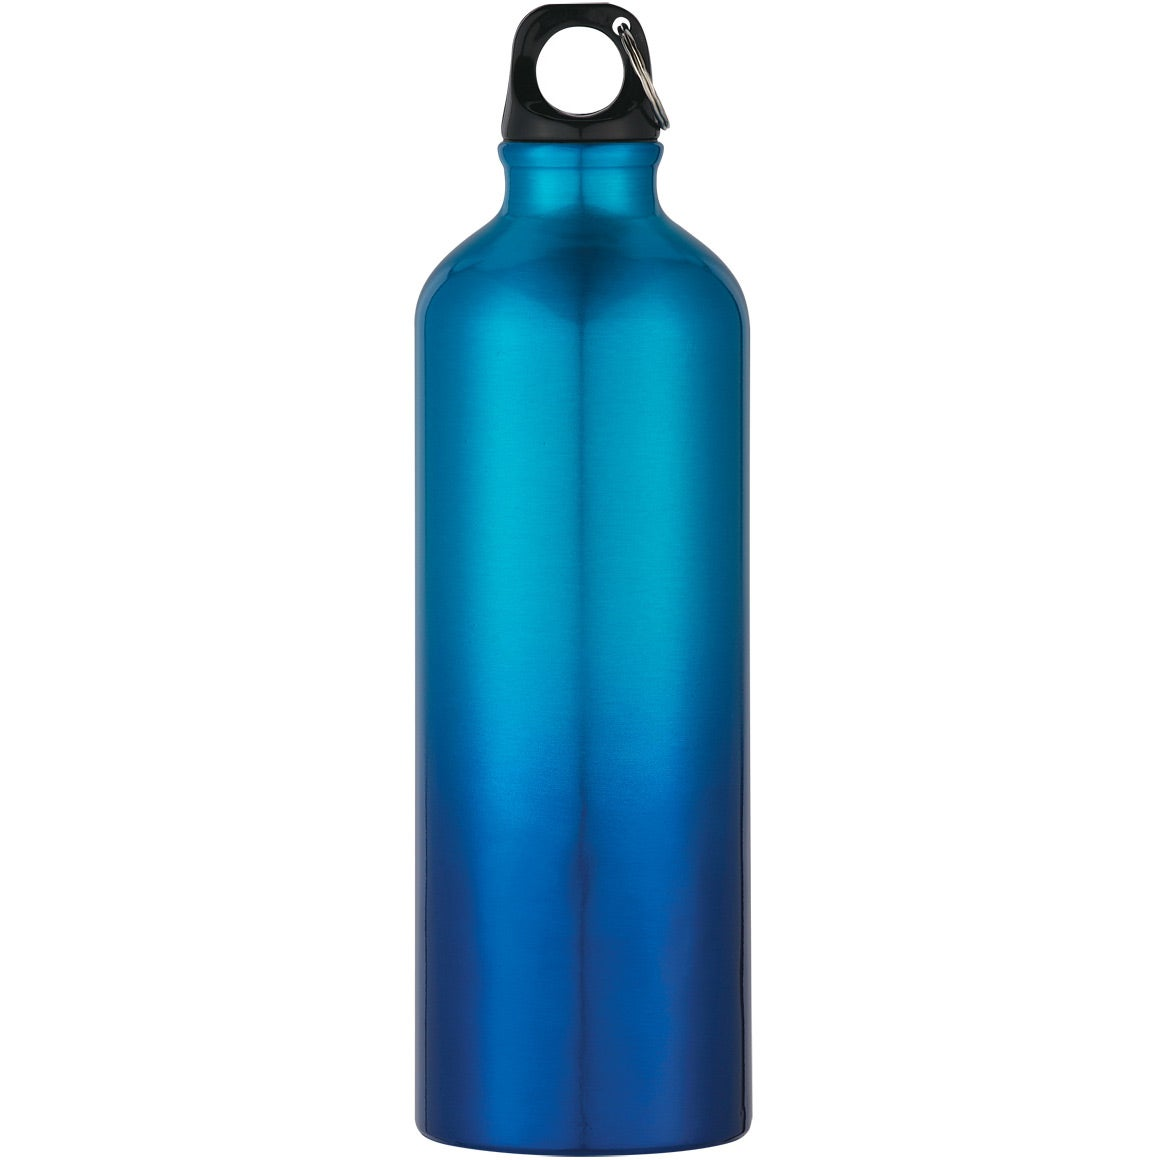 Gradient aluminum bike bottle 25 oz personalized for Floor 9 water bottle